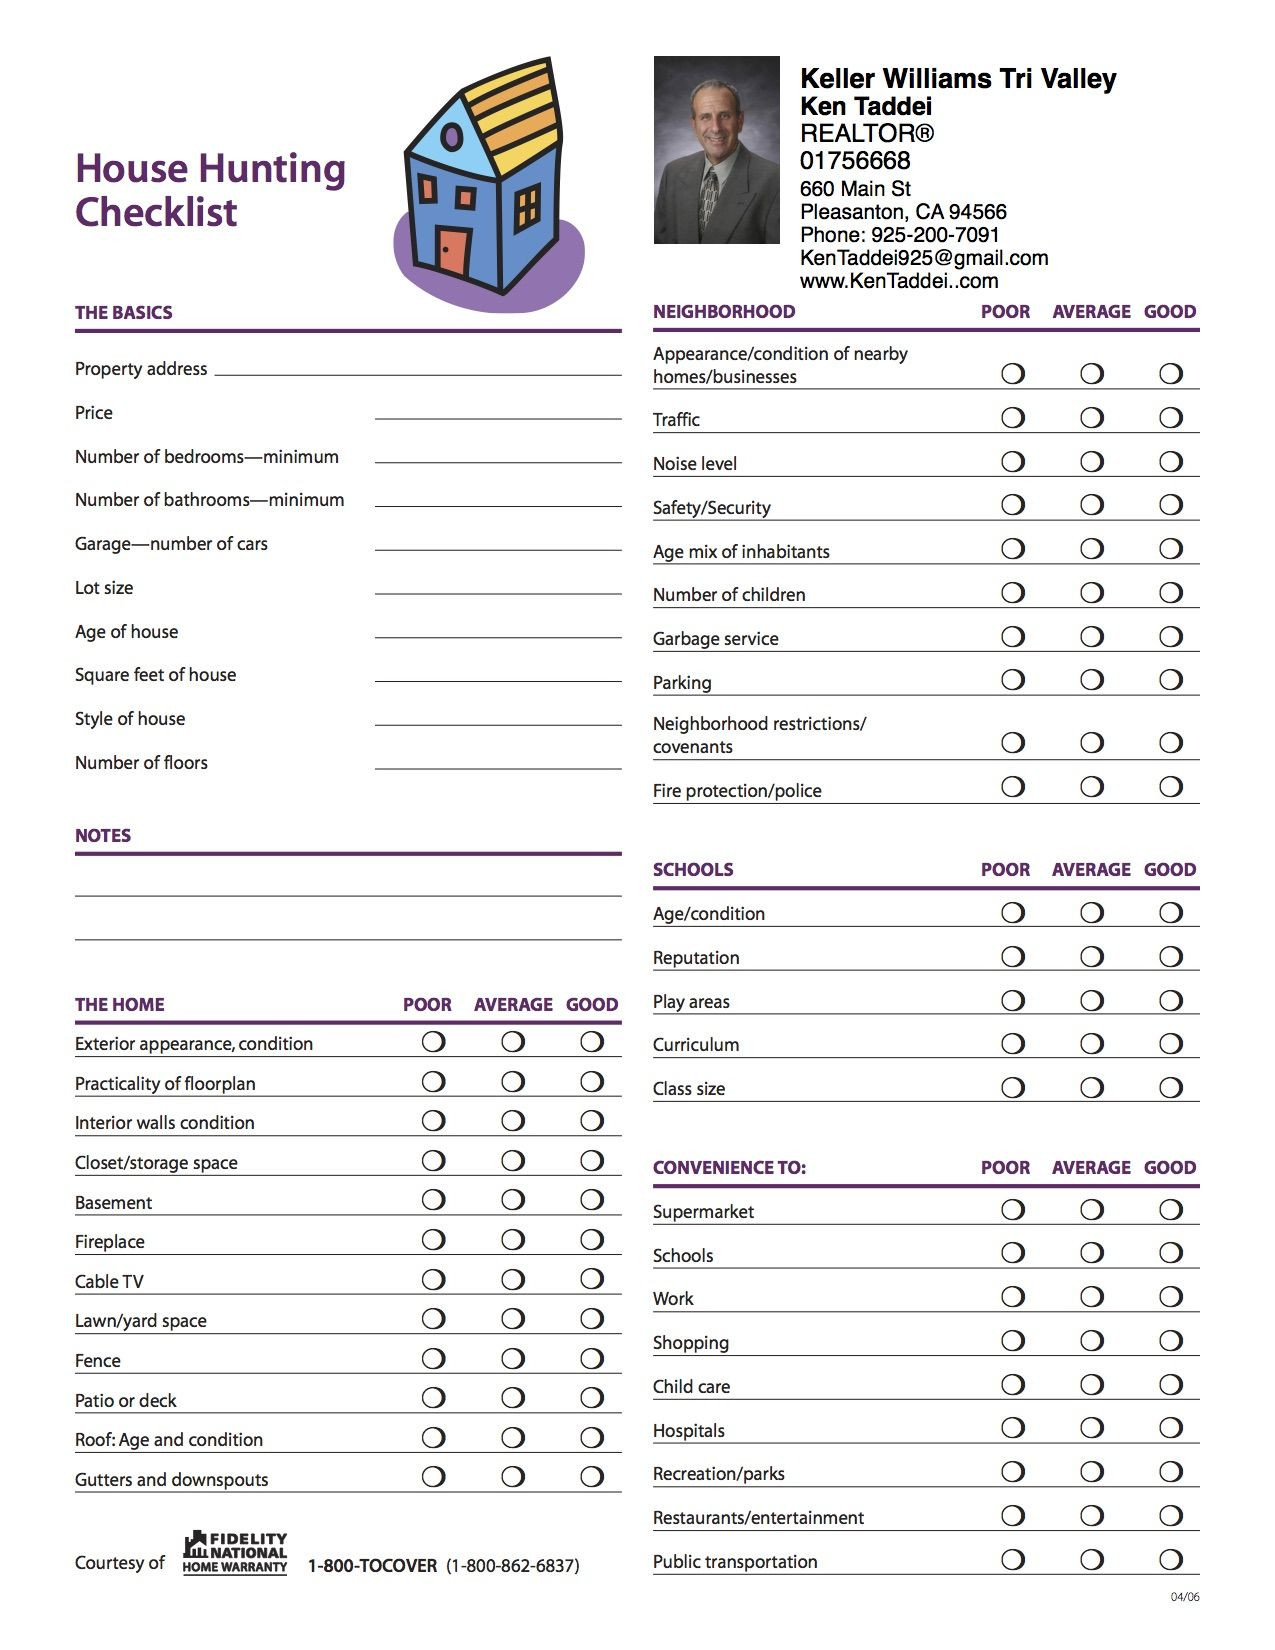 House Hunting Checklist Template